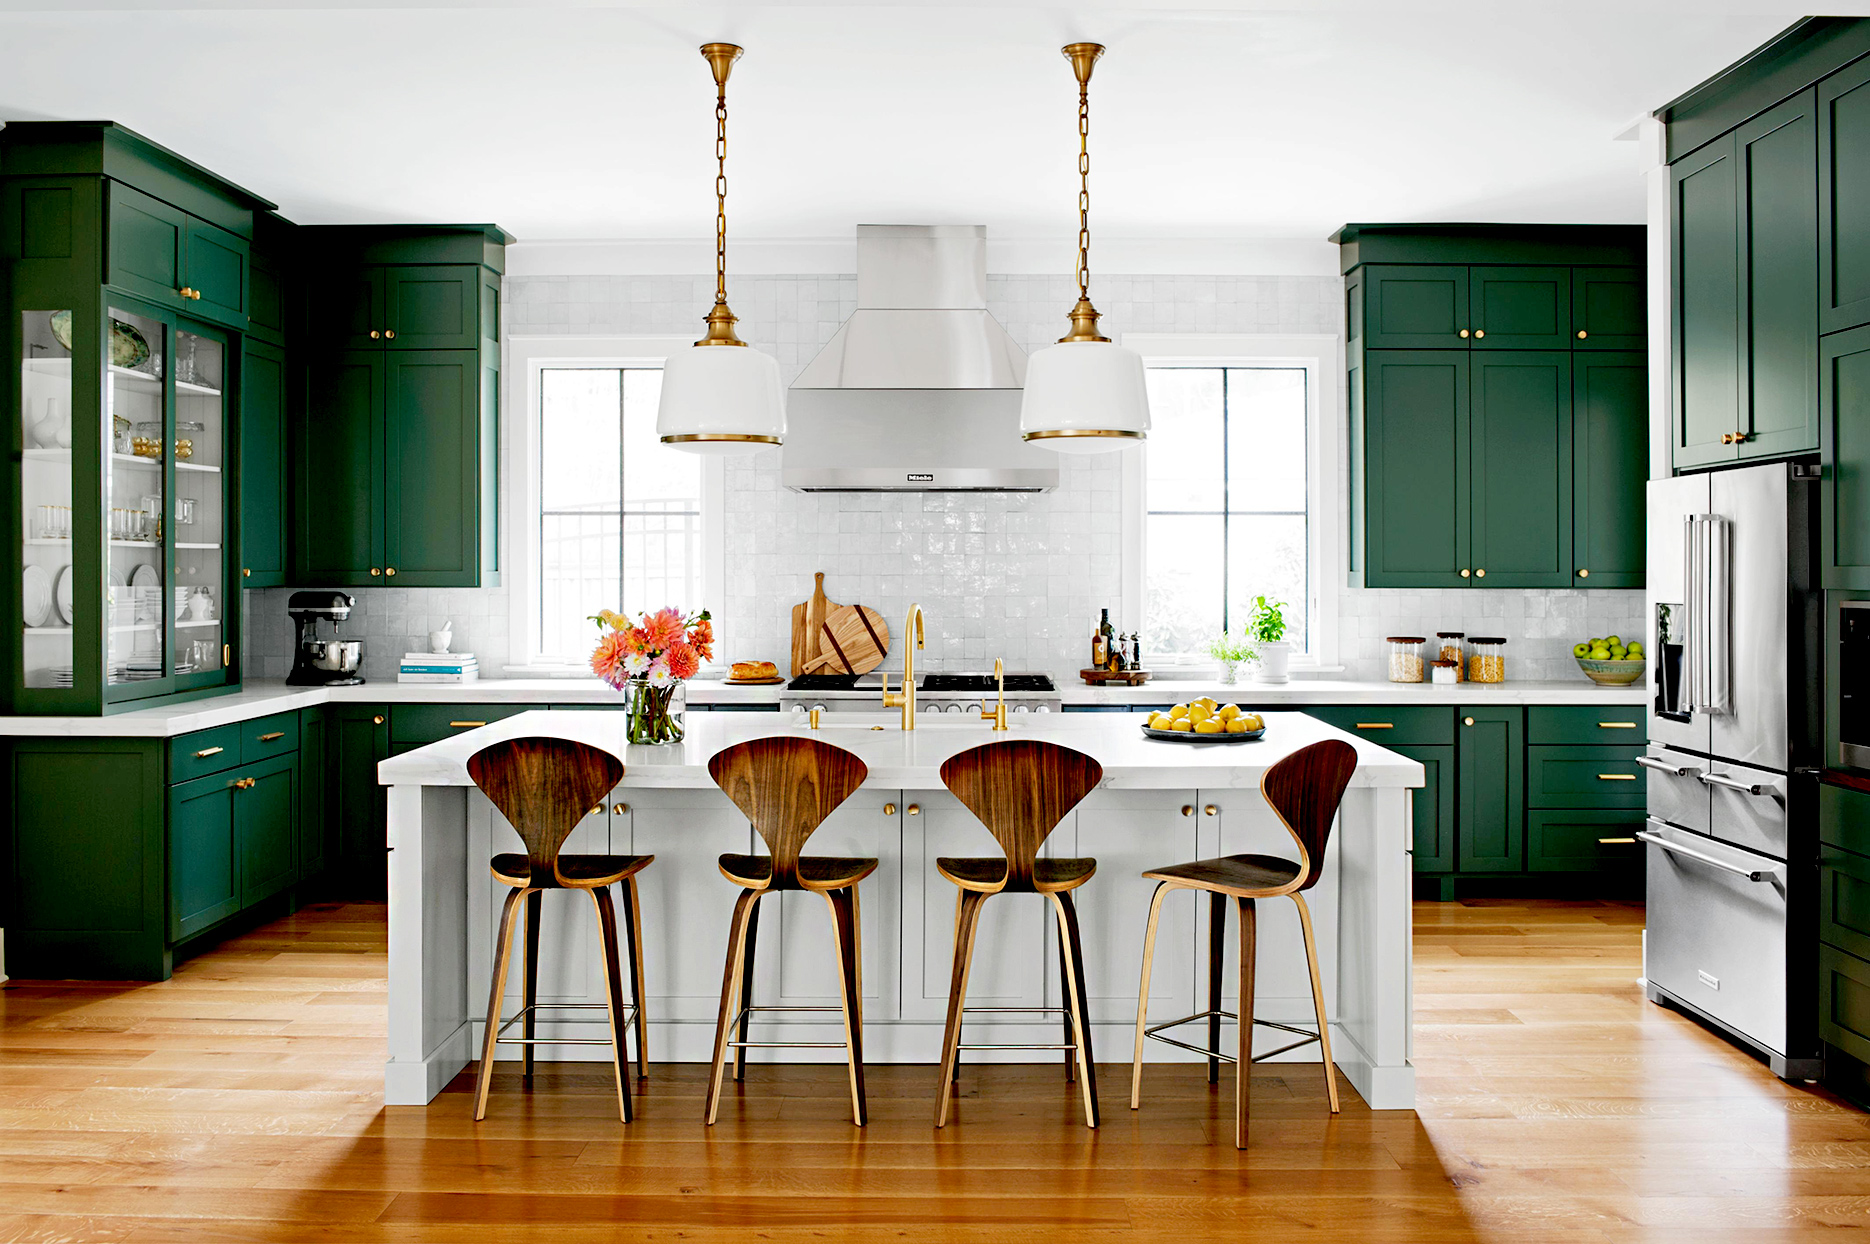 Kitchen with green cabinets and white island seating